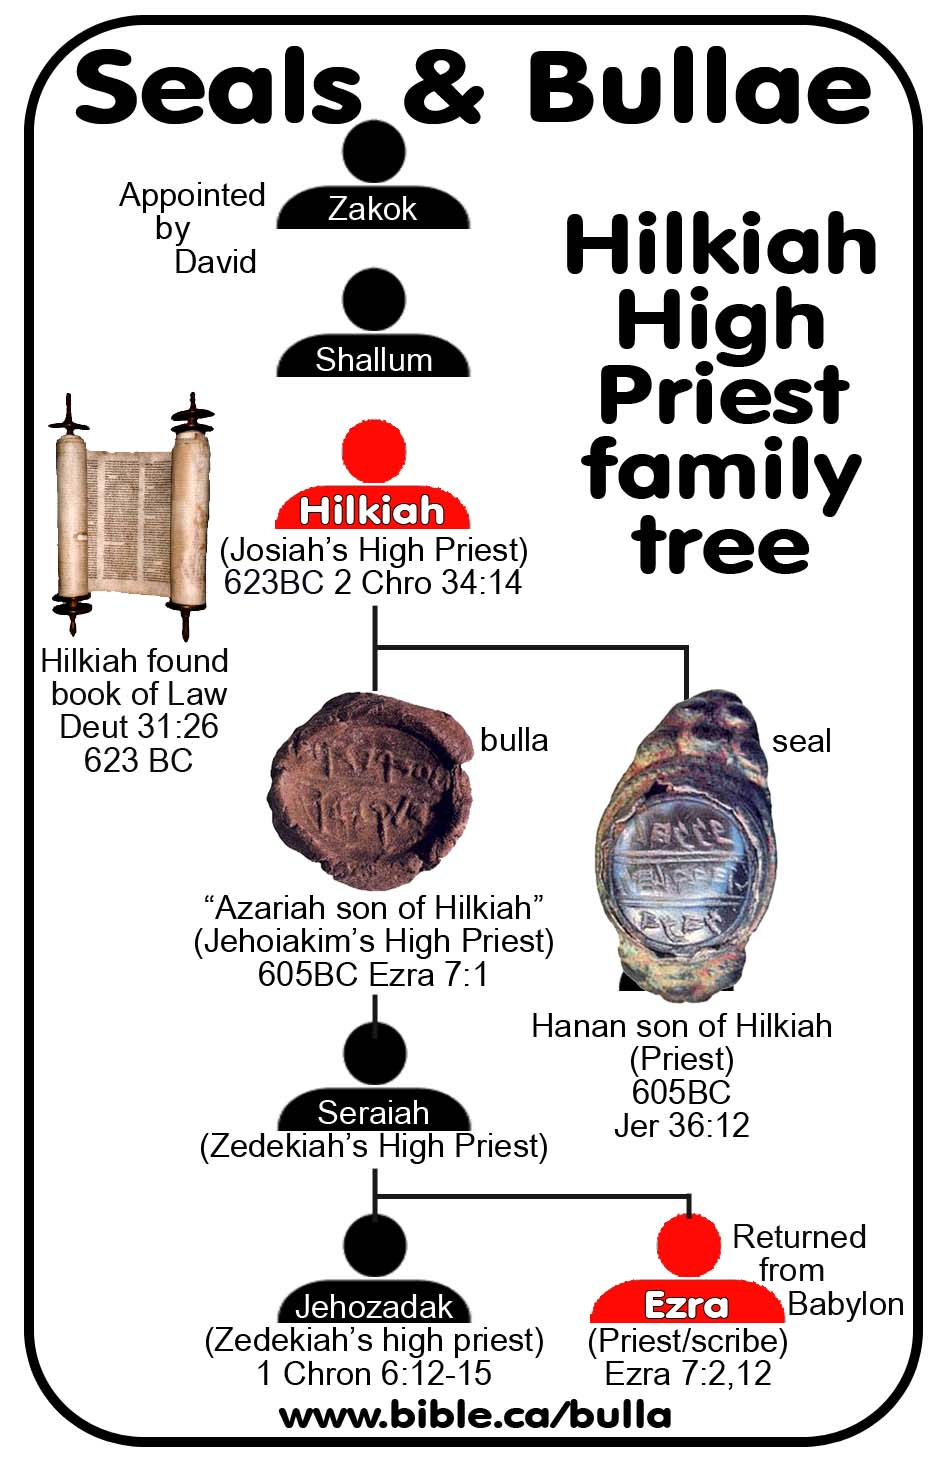 Bible lesson josiah finds the law of the lord - E Genealogy Tree Of Hilkiah The High Priest